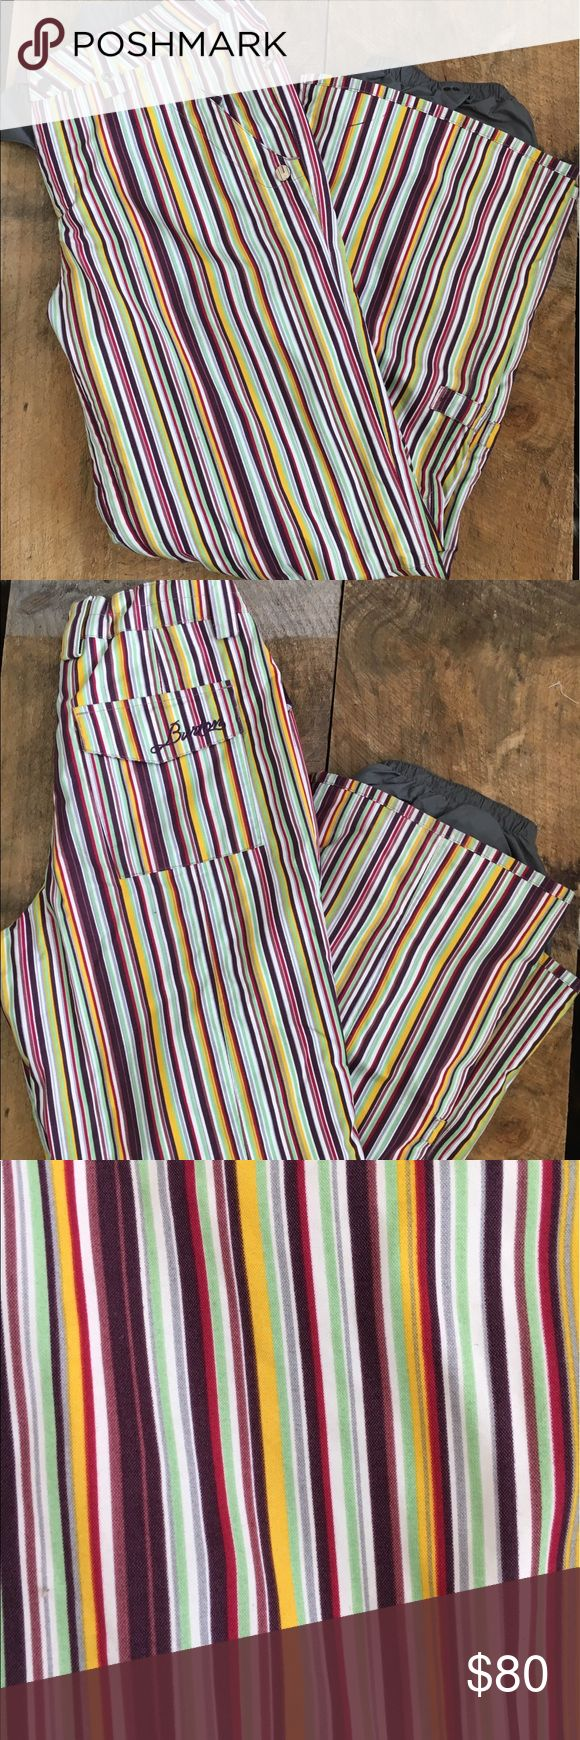 Burton Snowboard Pants Super rad snowboard pants by Burton. Multicolored stripe in ivory, yellow, purple, mint green and red. Top snap is stuck on other piece but easy fix. Super warm and stylish for the slopes! WOMENS SIZE M.   ALL SALES ARE FINAL. PLEASE ASK ANY QUESTIONS PRIOR TO PURCHASING Burton Other